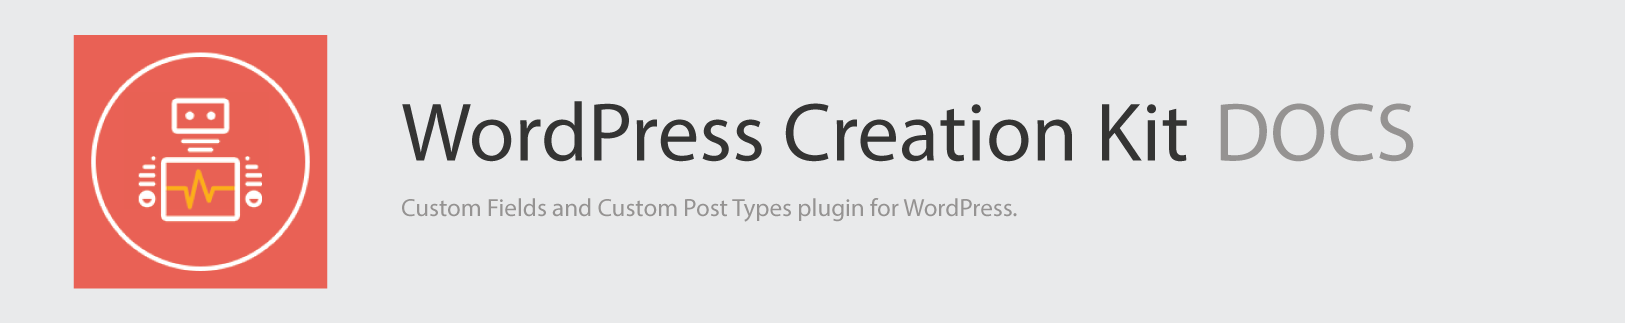 WordPress Creation Kit Docs Logo v2